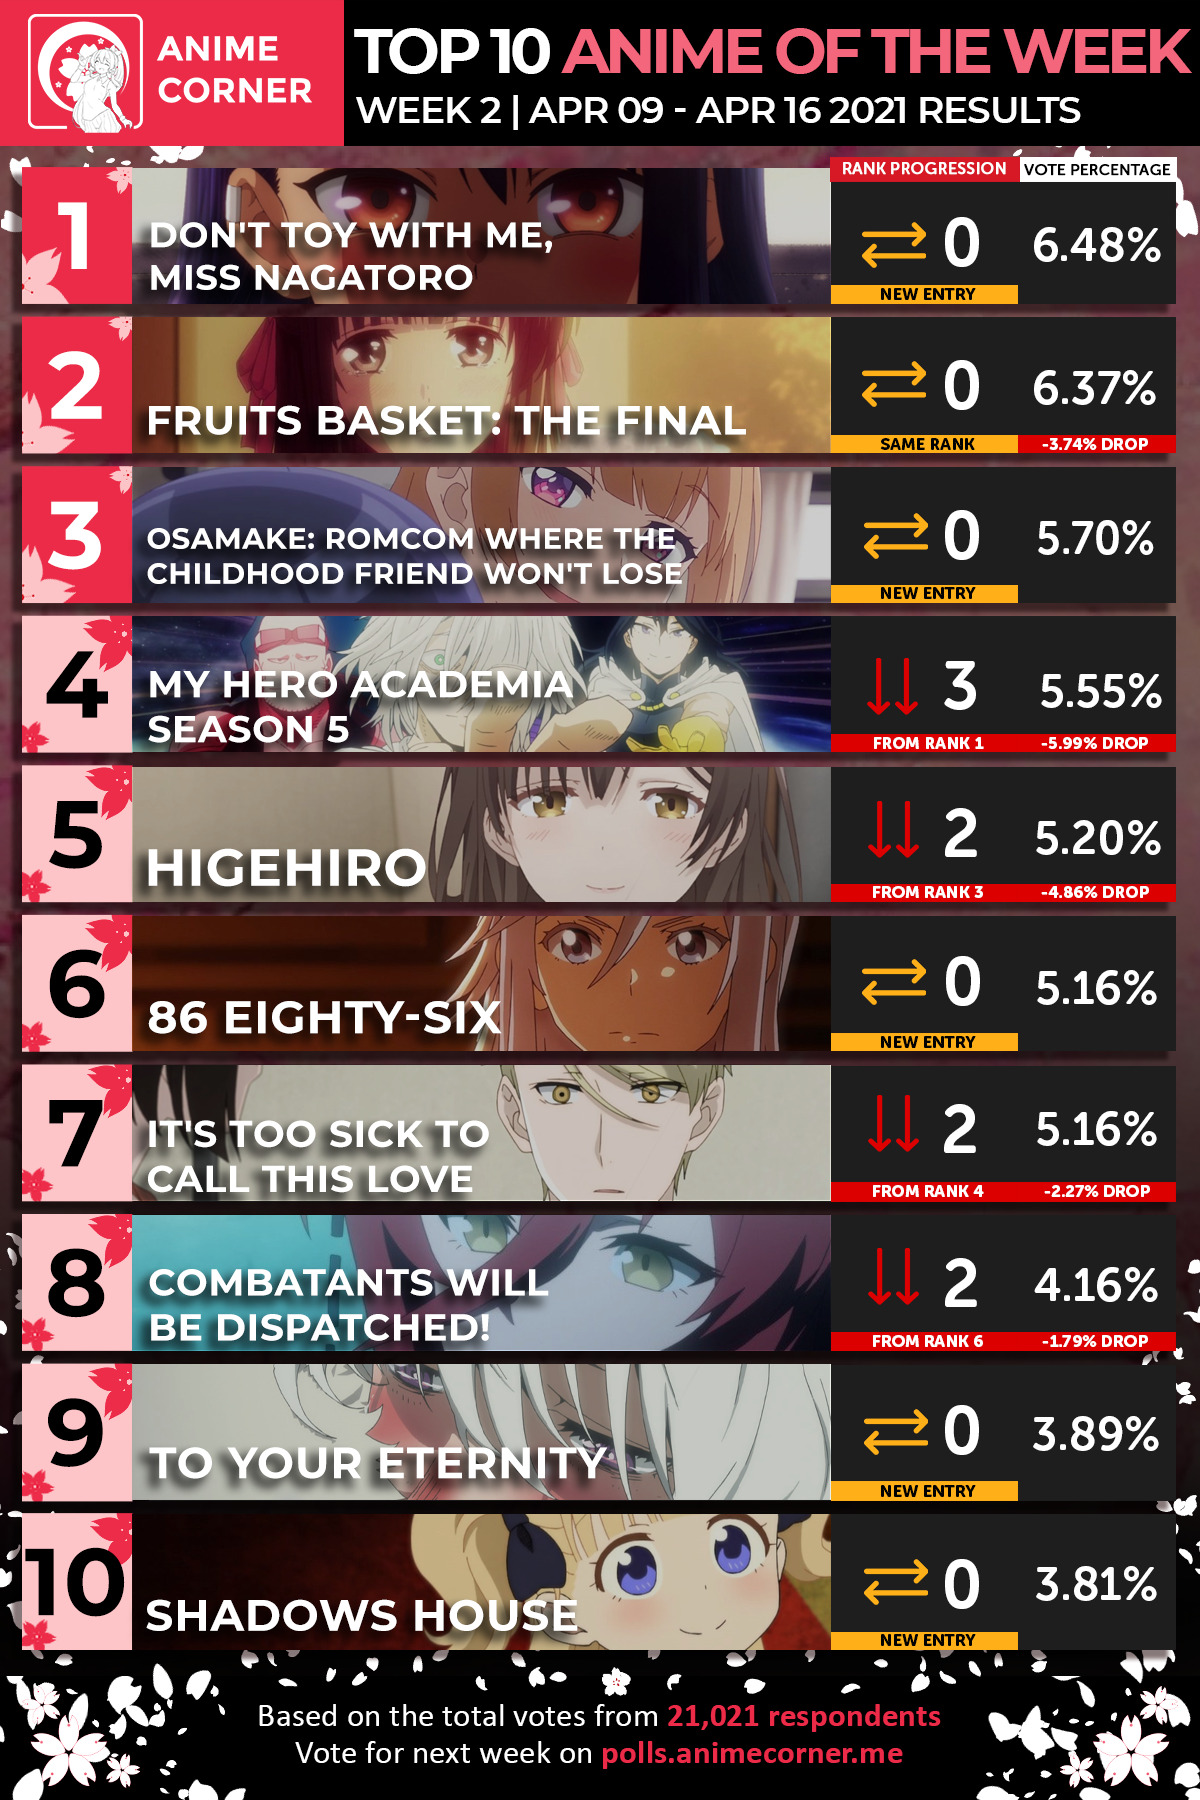 Top 10 Spring 2021 Anime of the Week 2